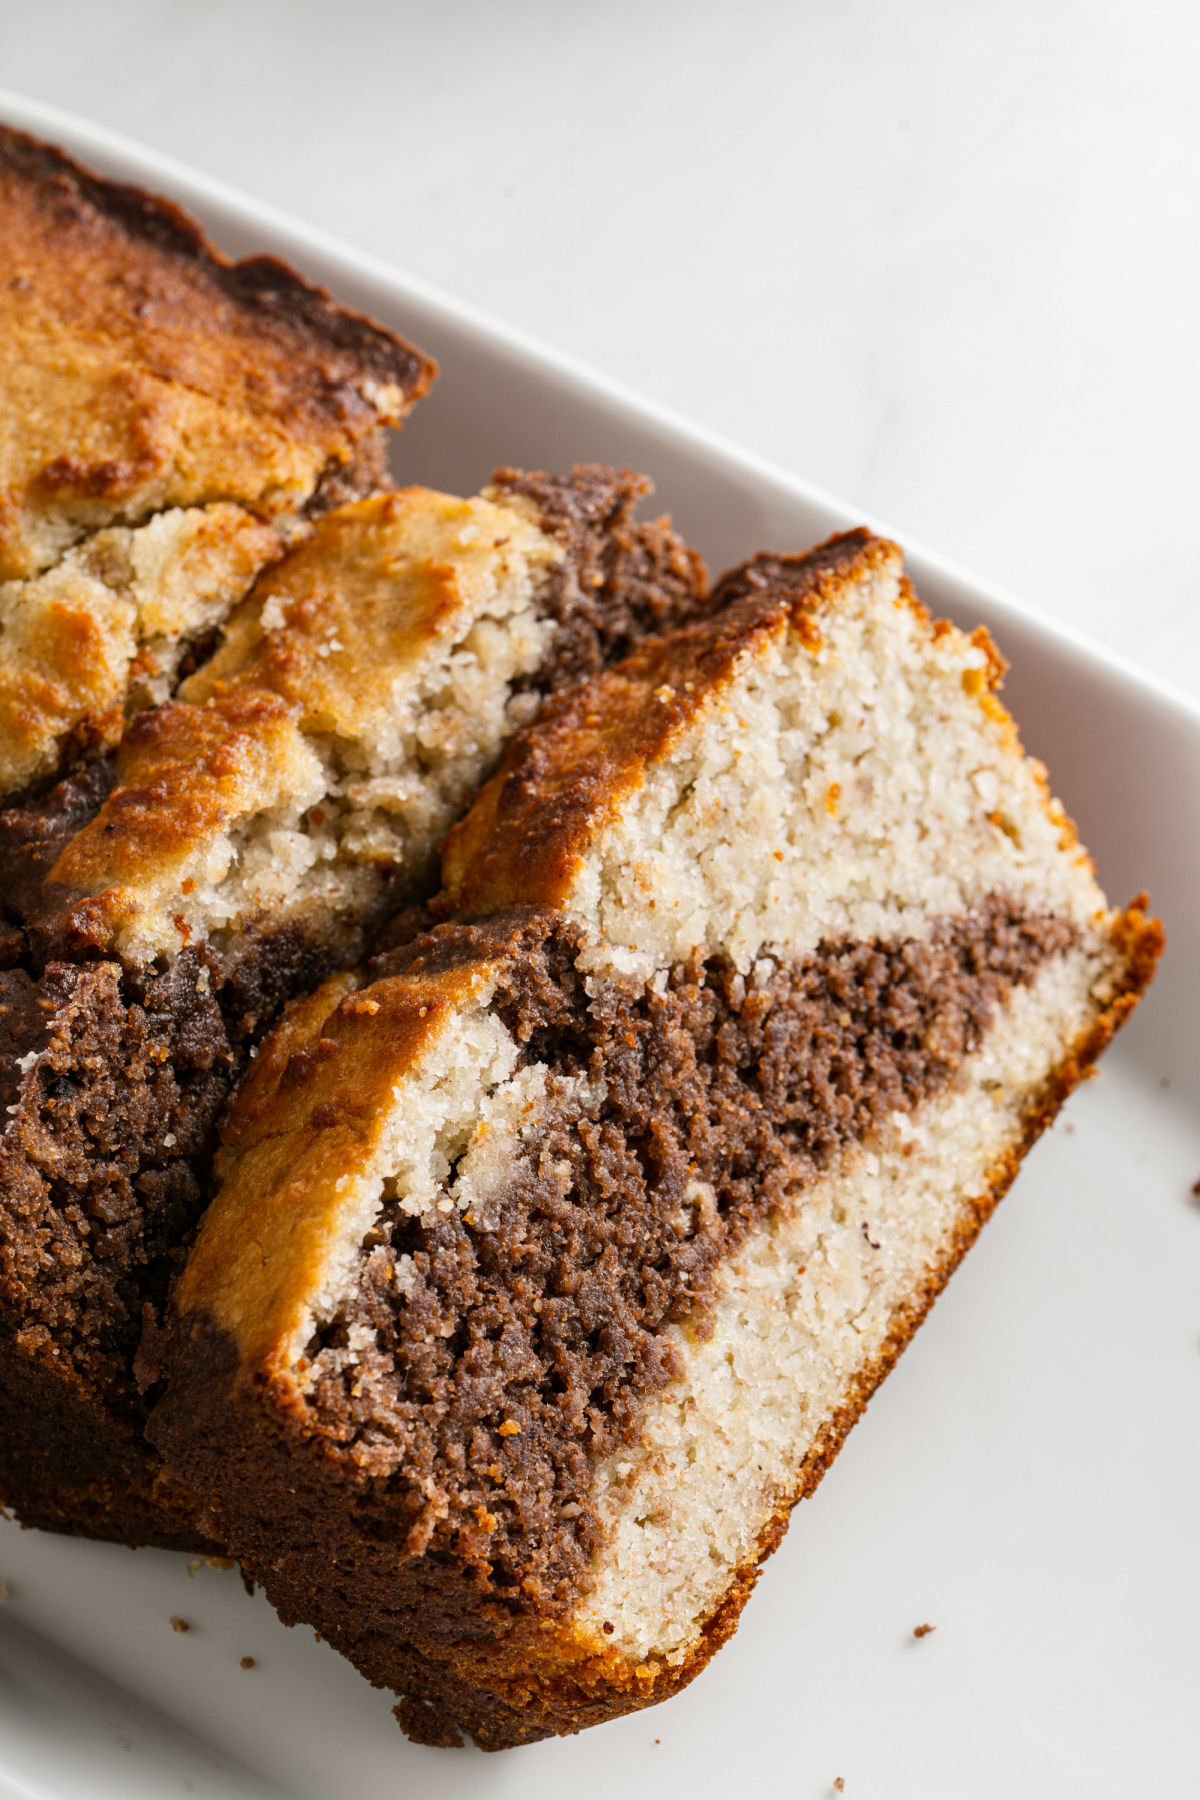 Banana bread slice with a swirl of chocolate in the middle.